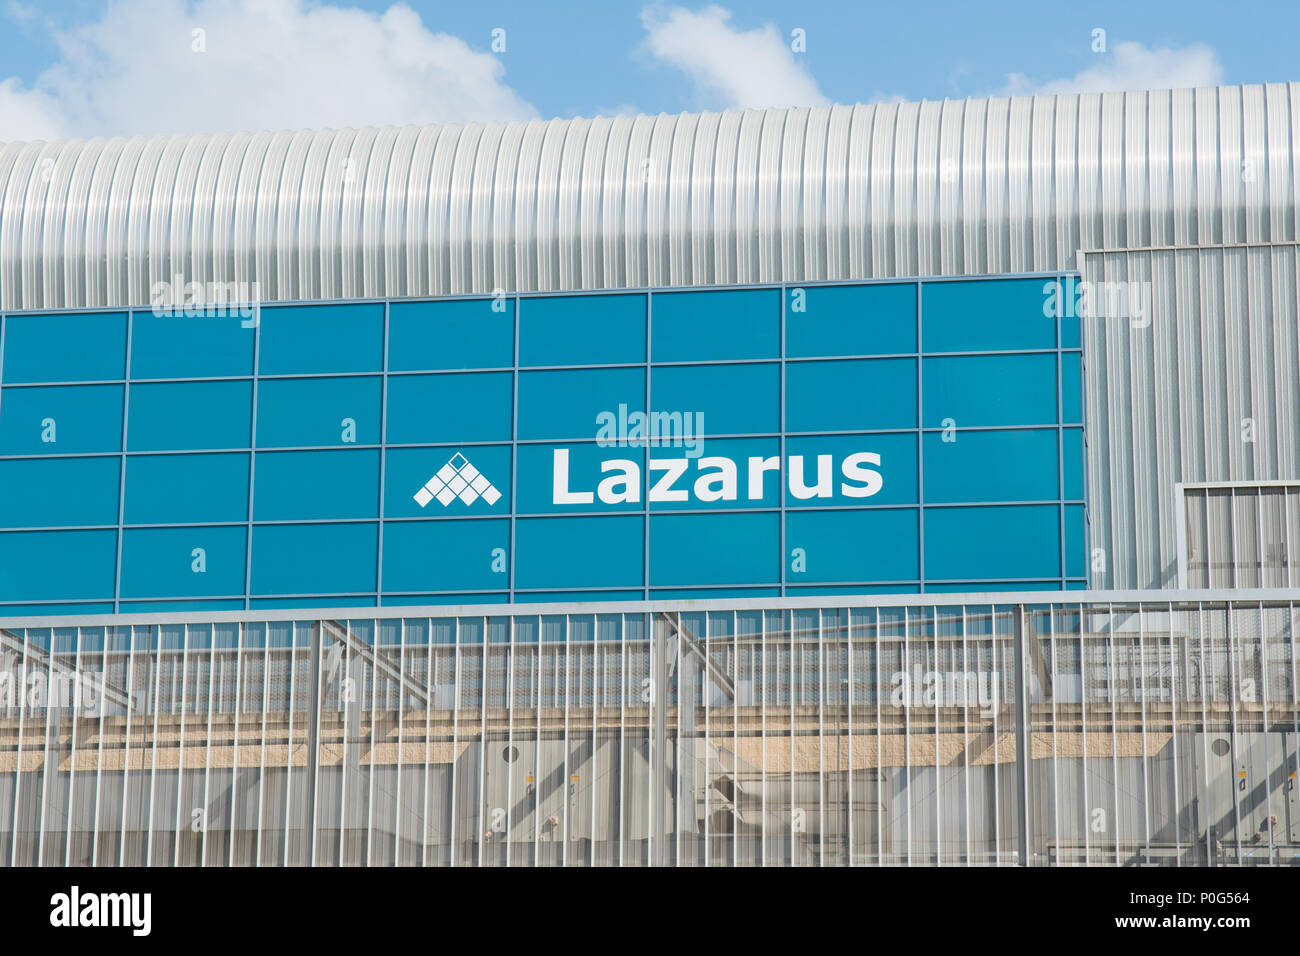 Lazarus Properties sign, Doncaster Racecourse, Doncaster, South Yorkshire, England, UK - Stock Image